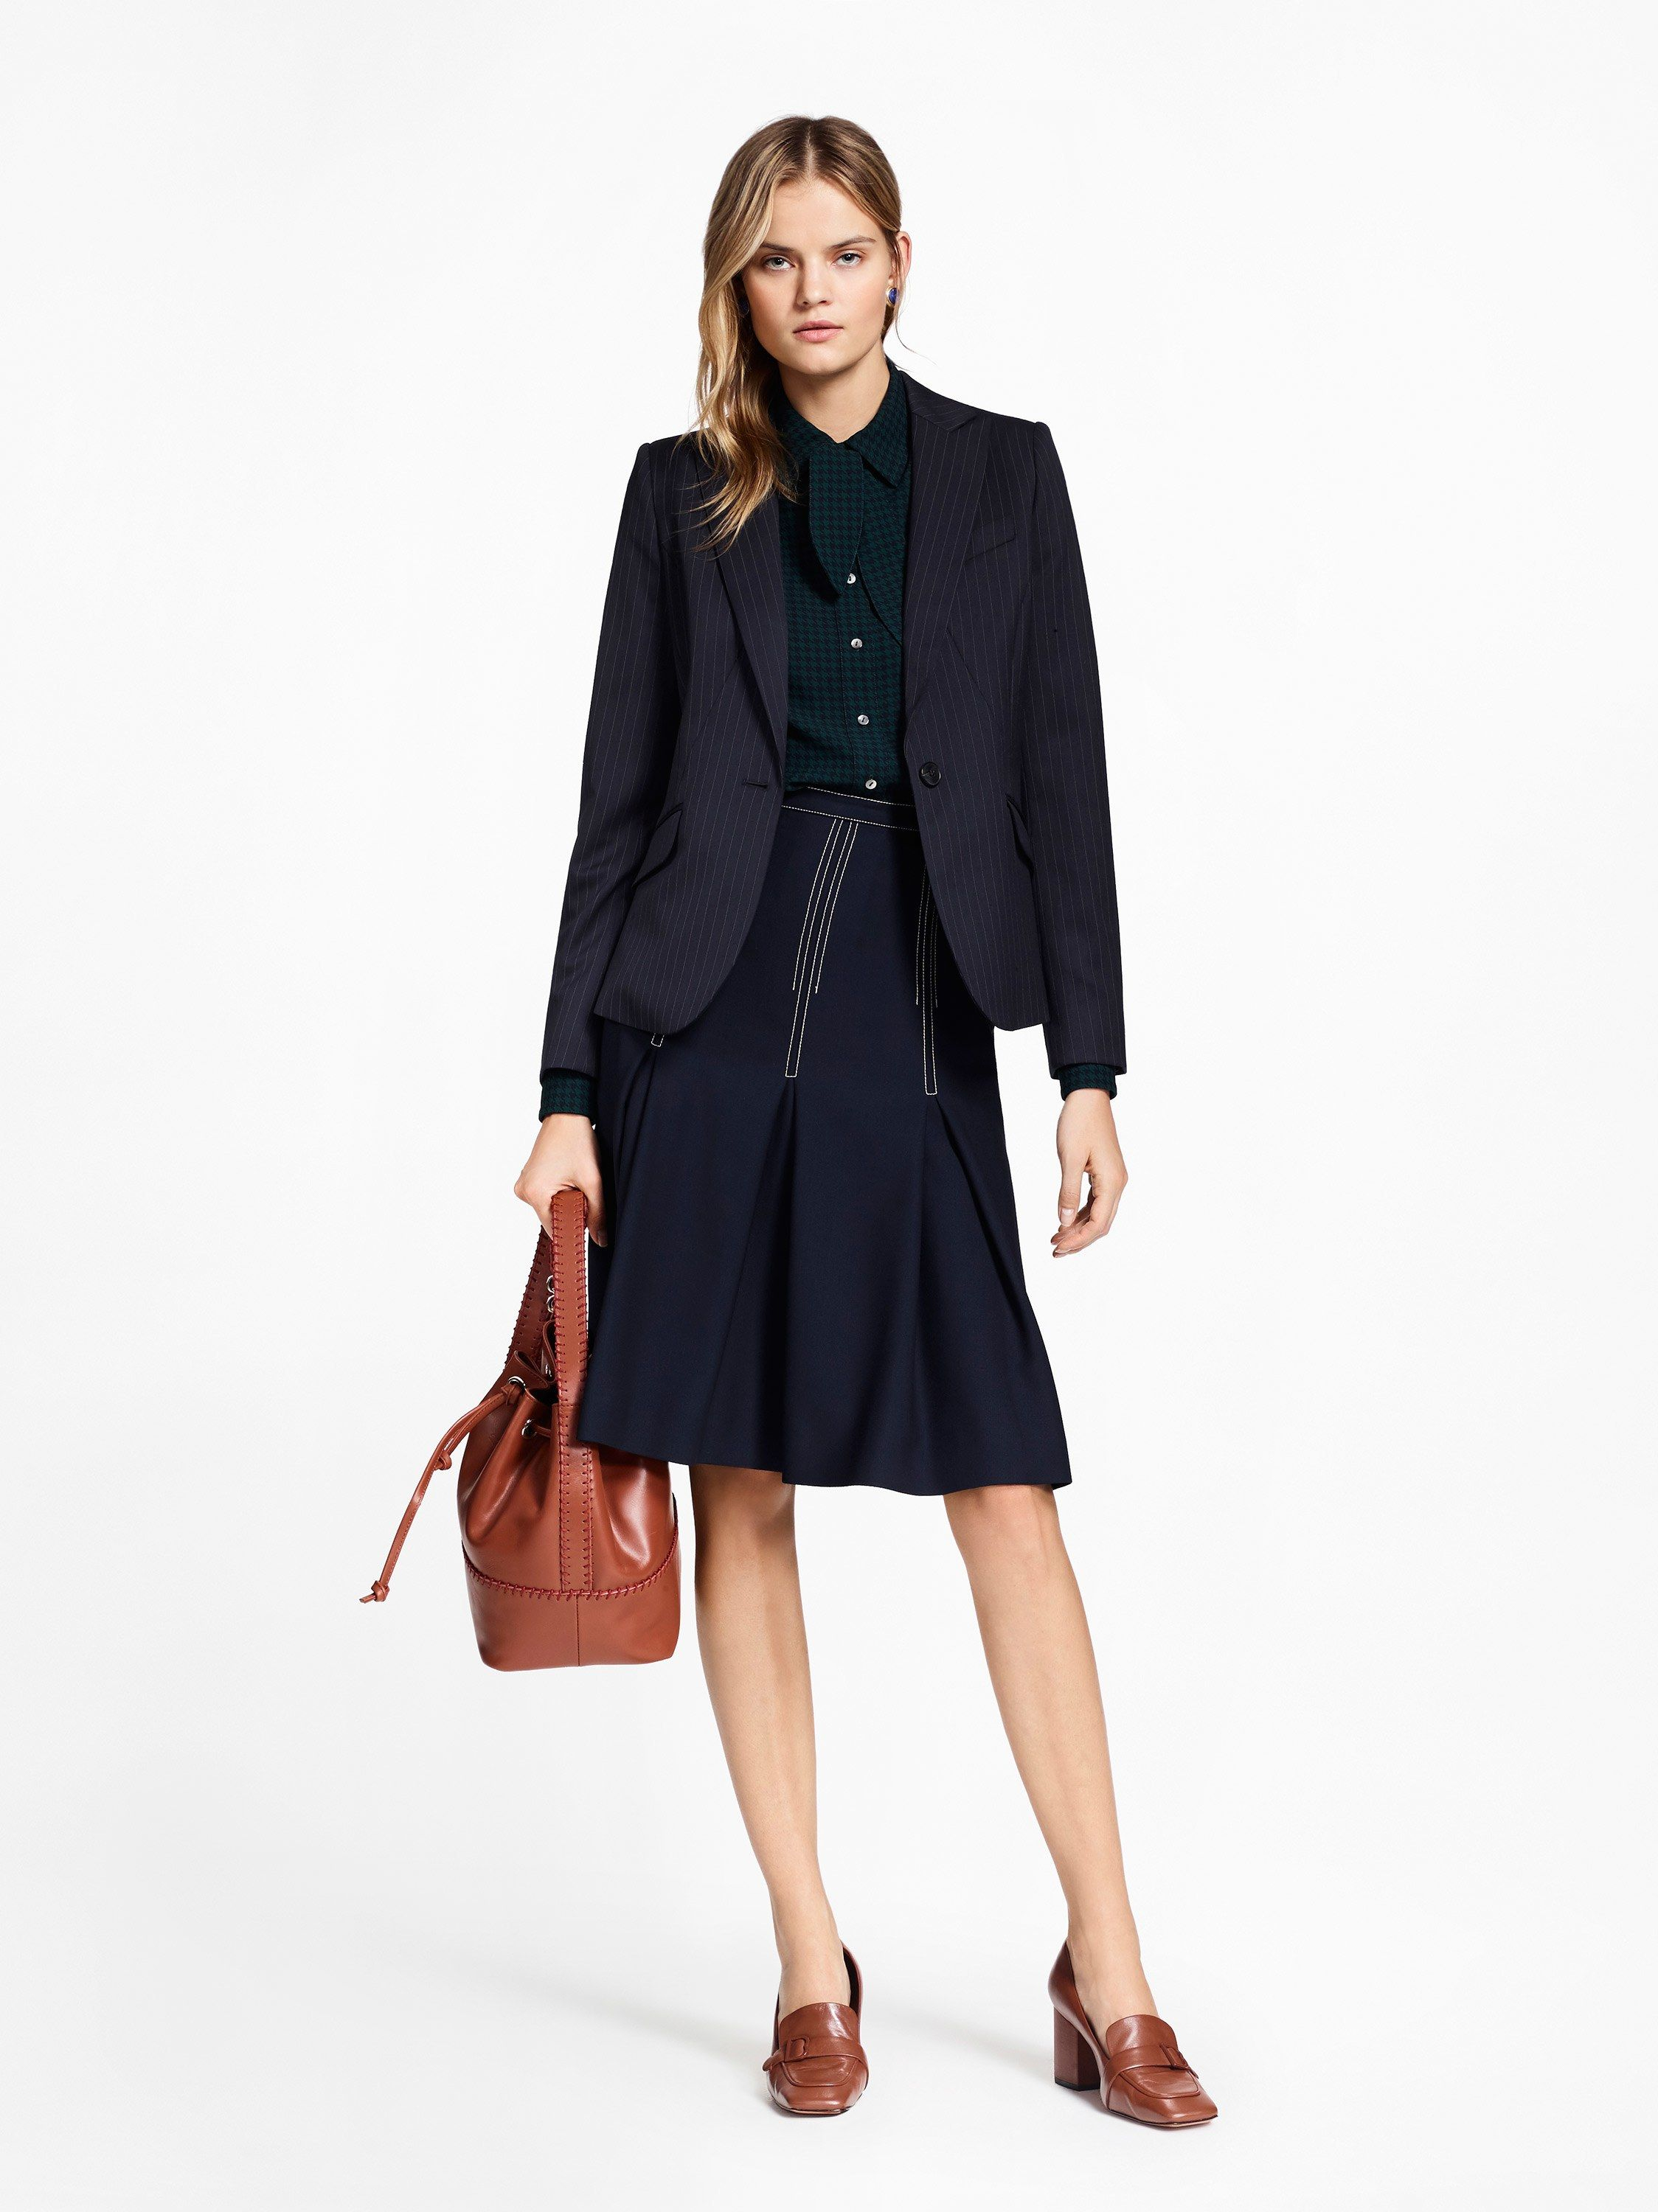 Brooks Brothers Pre-Fall 2017 Collection Photos - Vogue